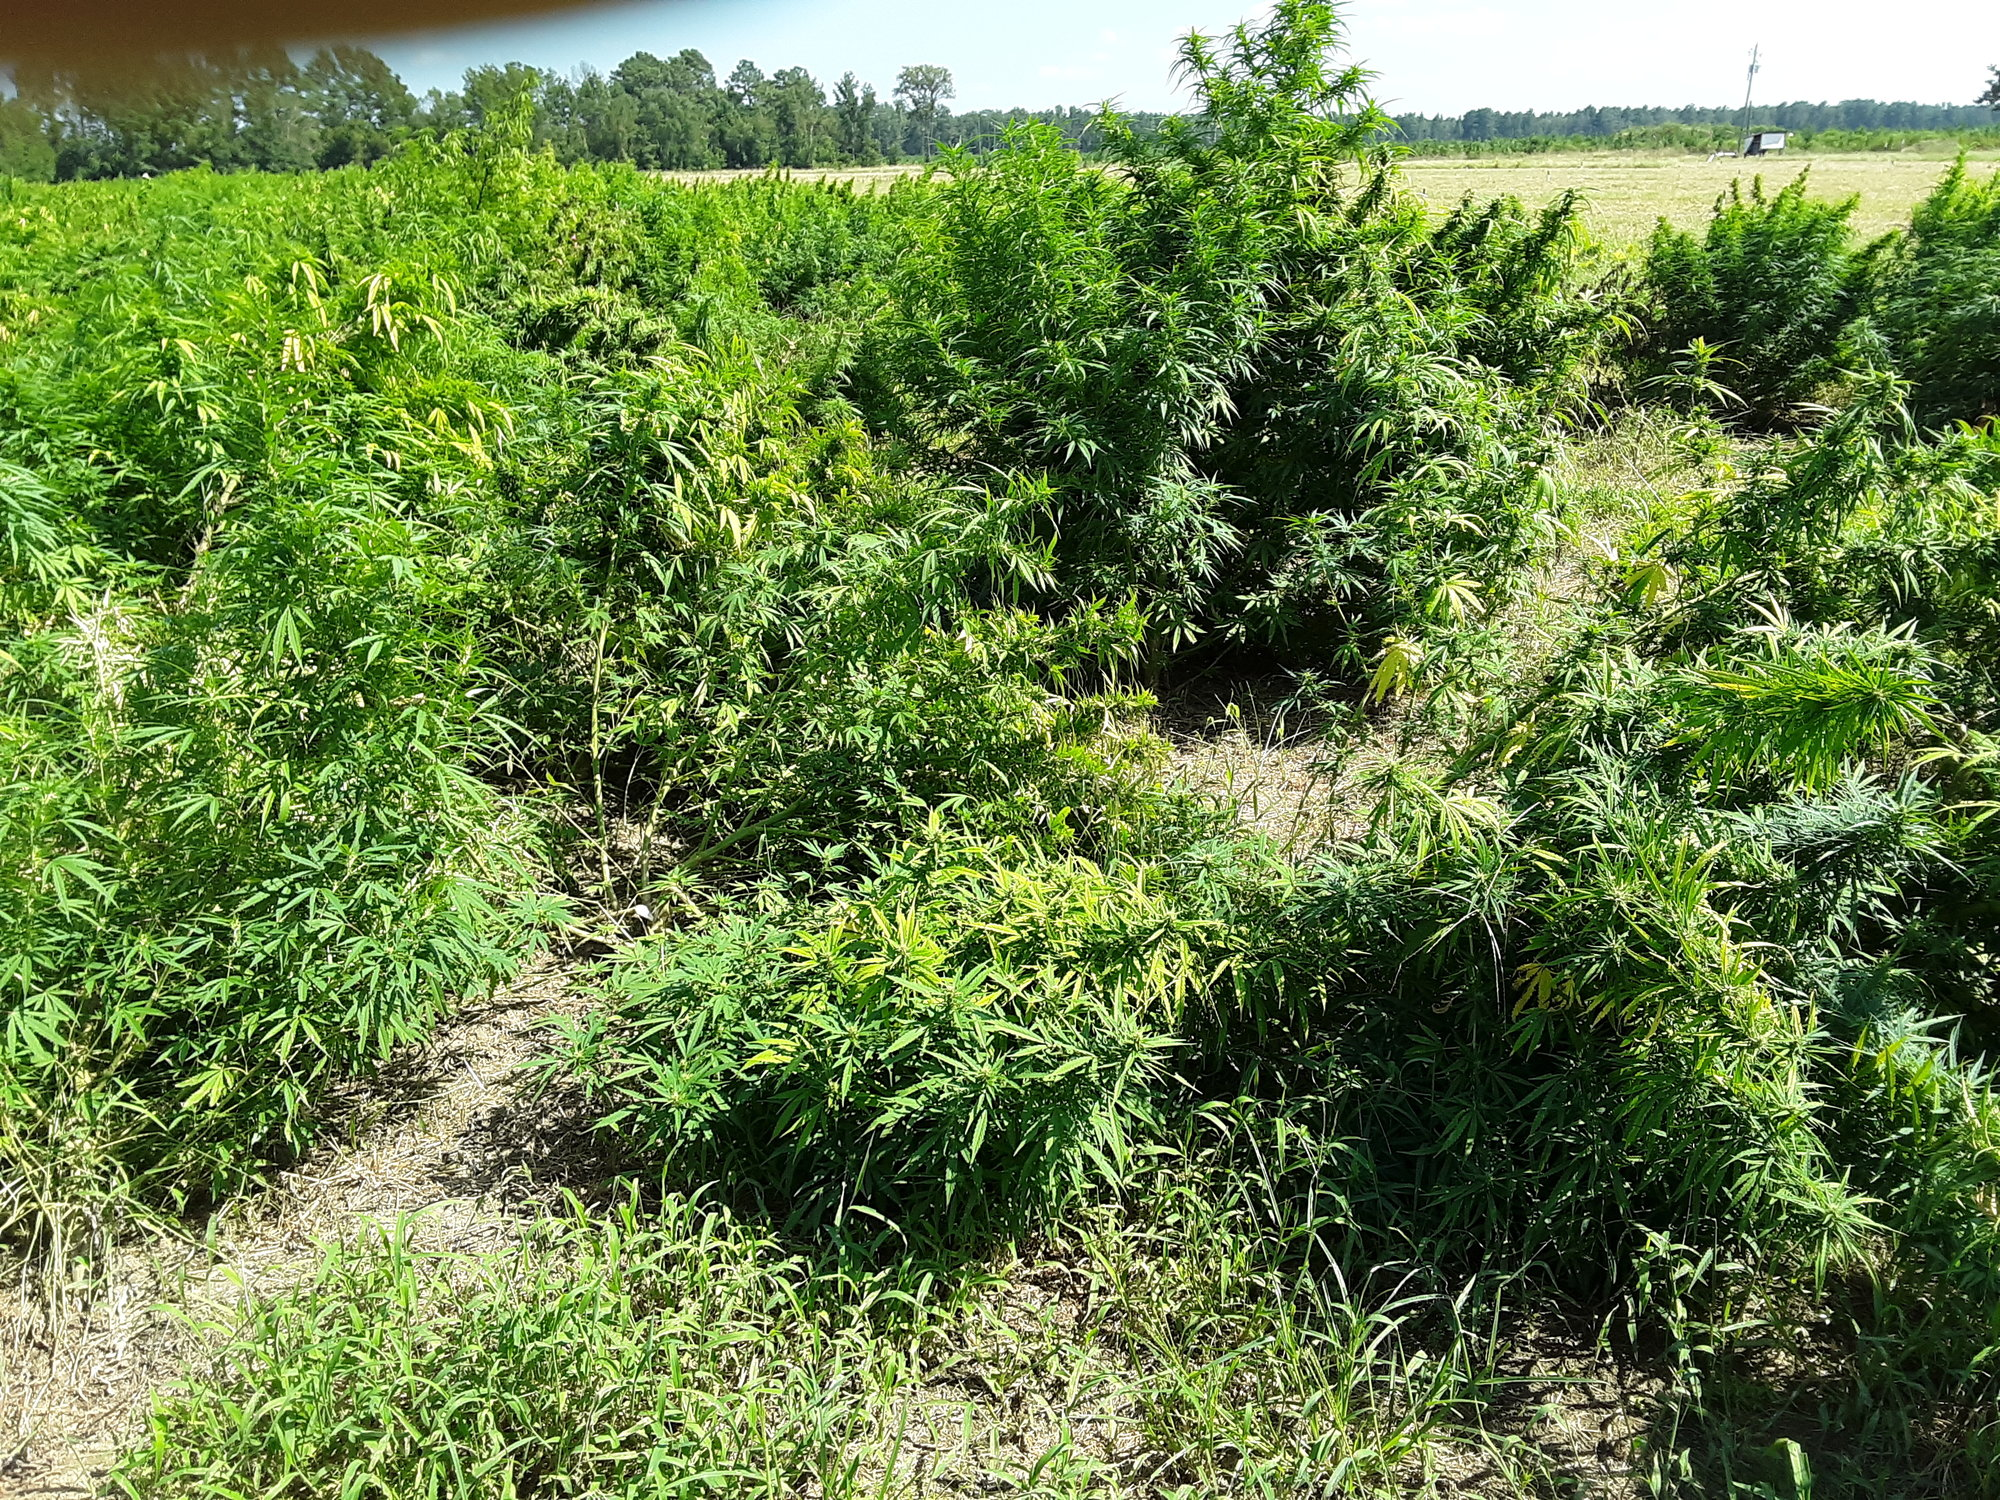 Some hemp plants can be seen pushed over or blown down from even the small gusts from Hurricane Dorian, but Bradford escaped major damage.